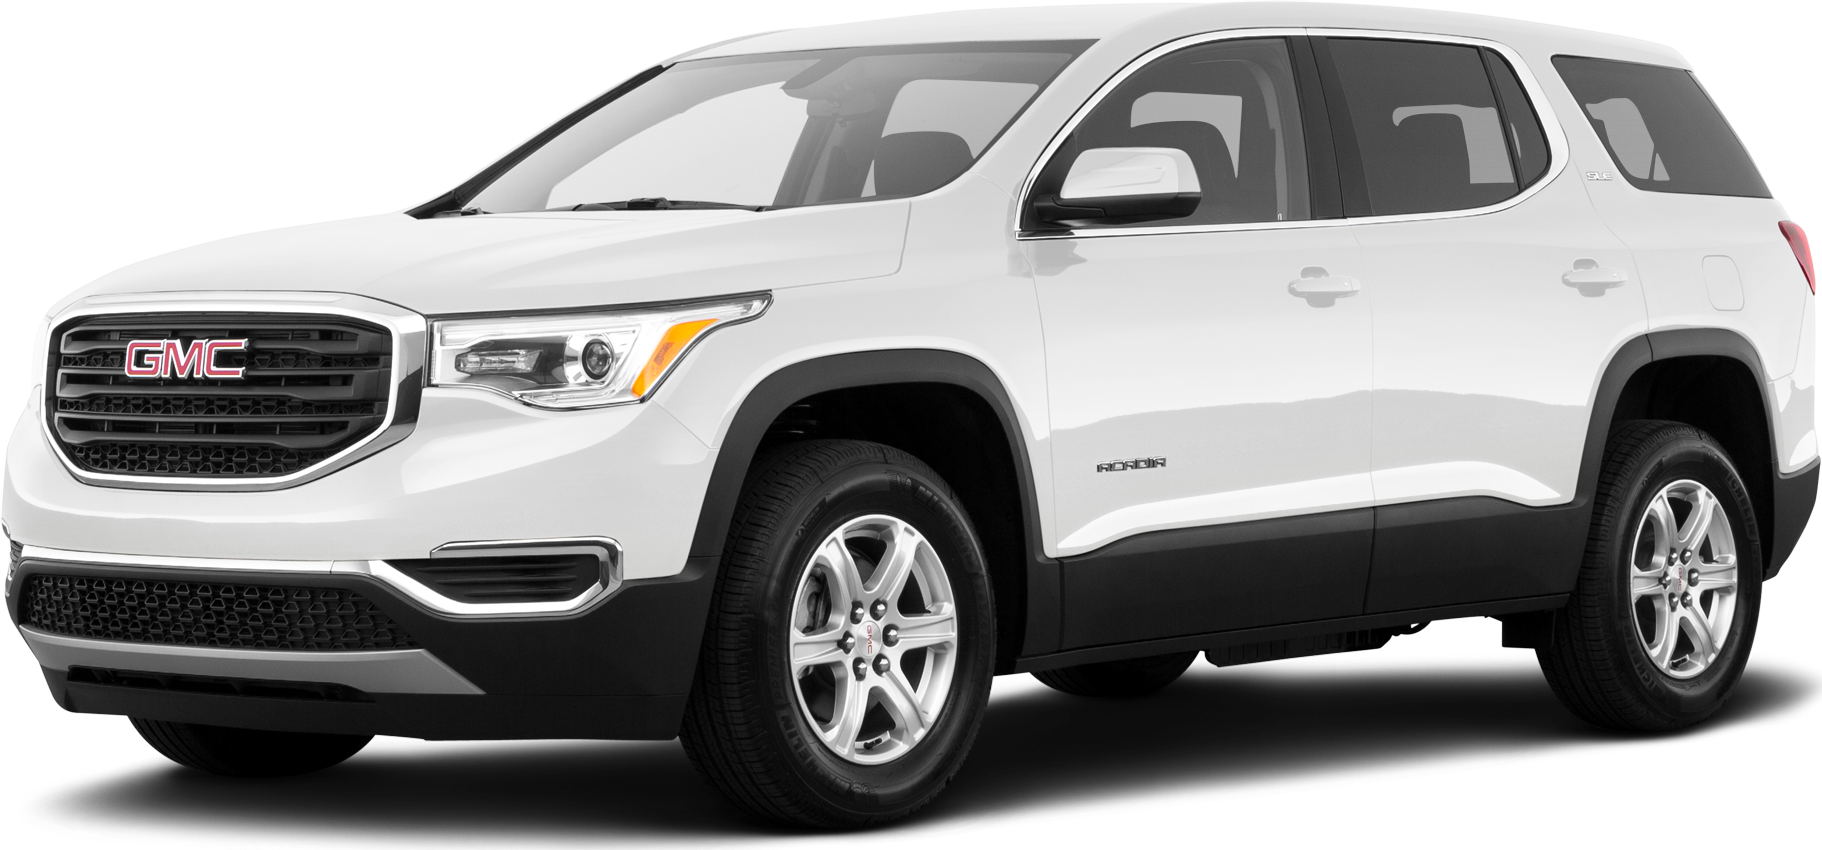 2018 Gmc Acadia Consumer Reviews Kelley Blue Book